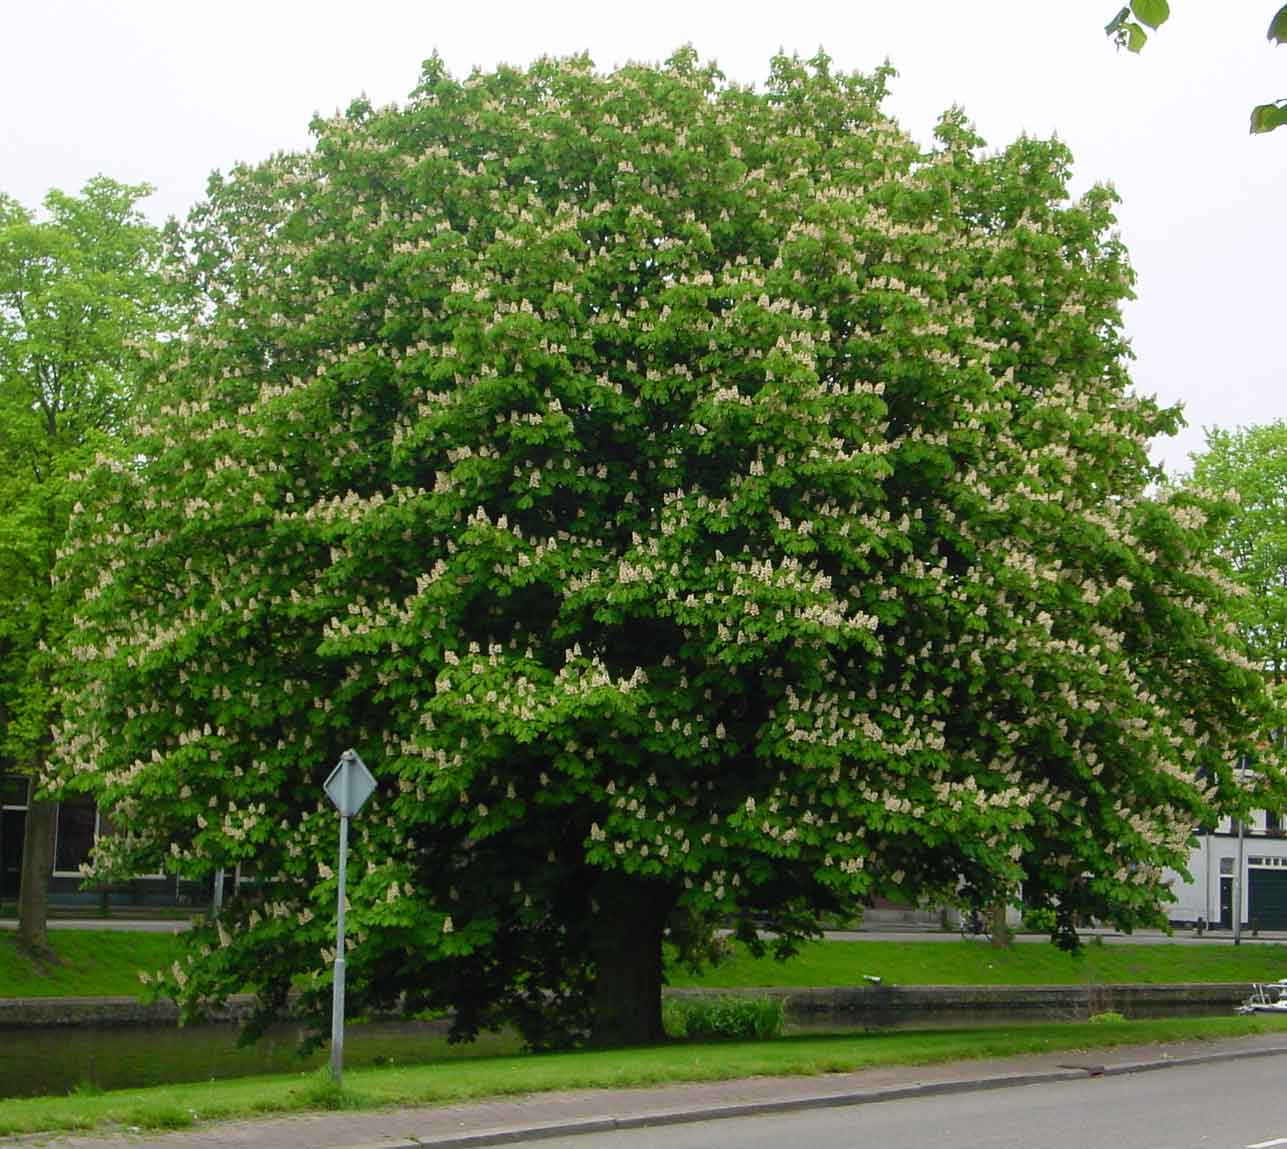 The Red Horse Chestnut Tree | ferrebeekeeper